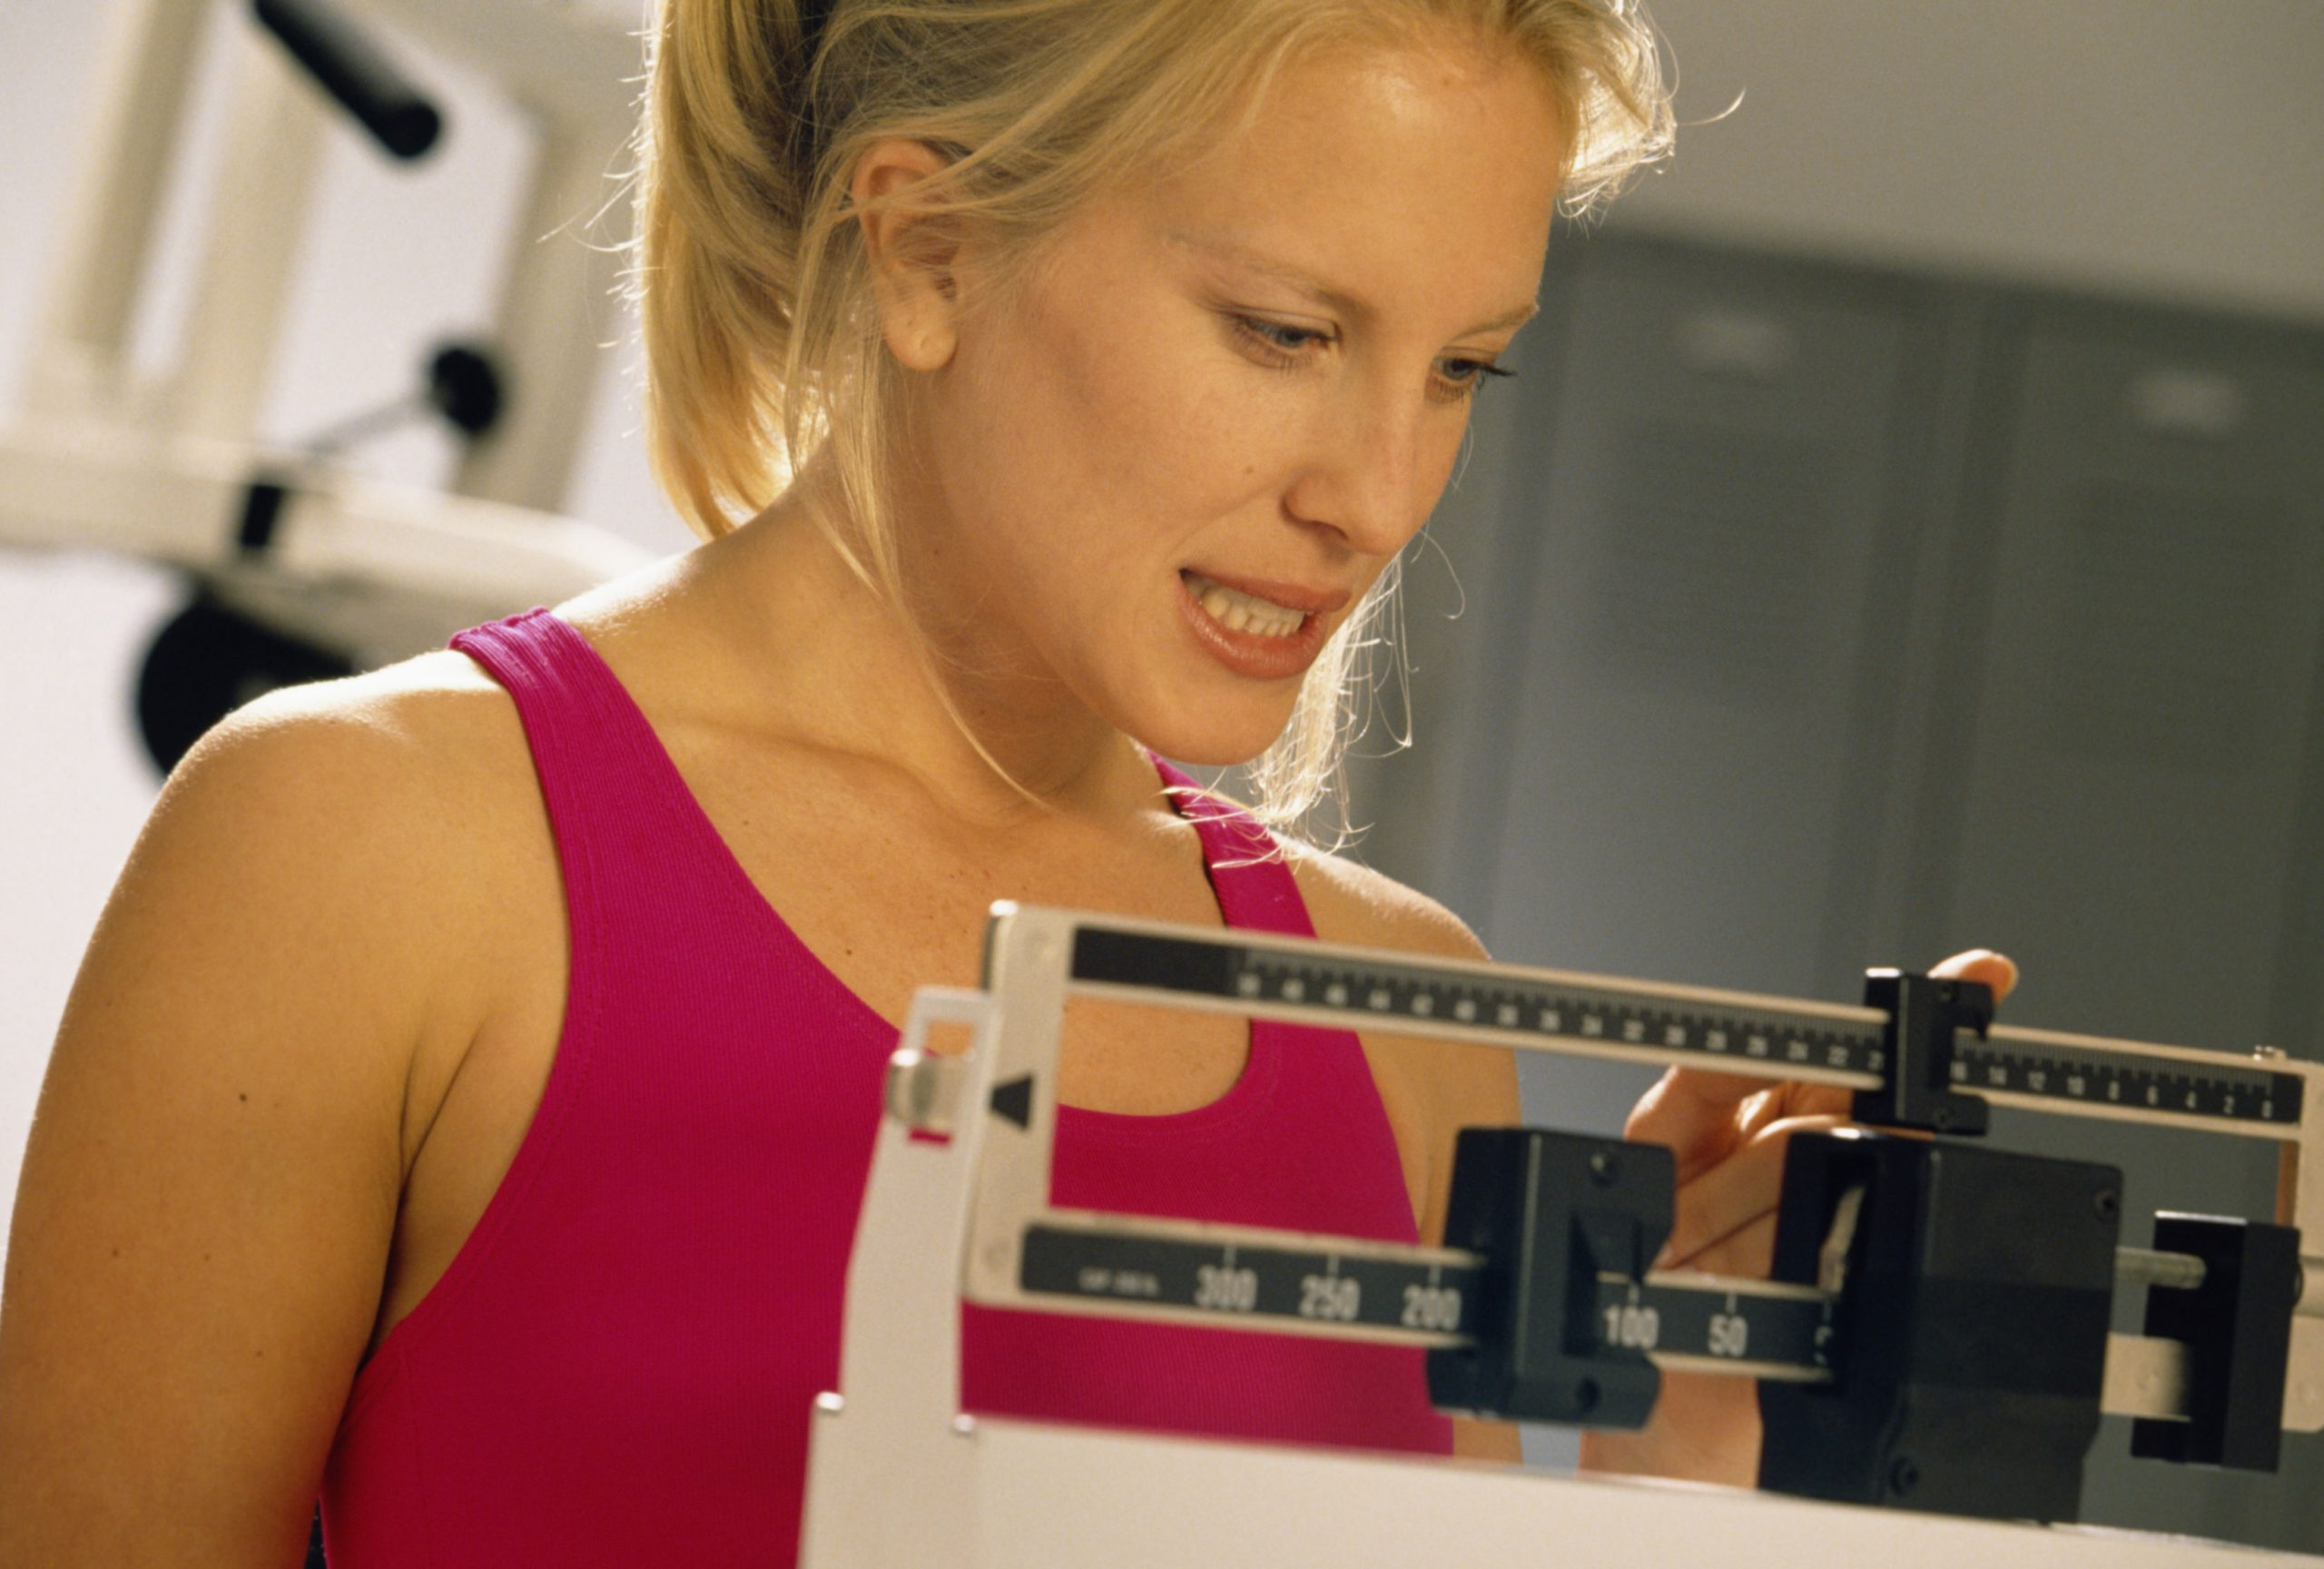 Lose Weight and Keep It Off